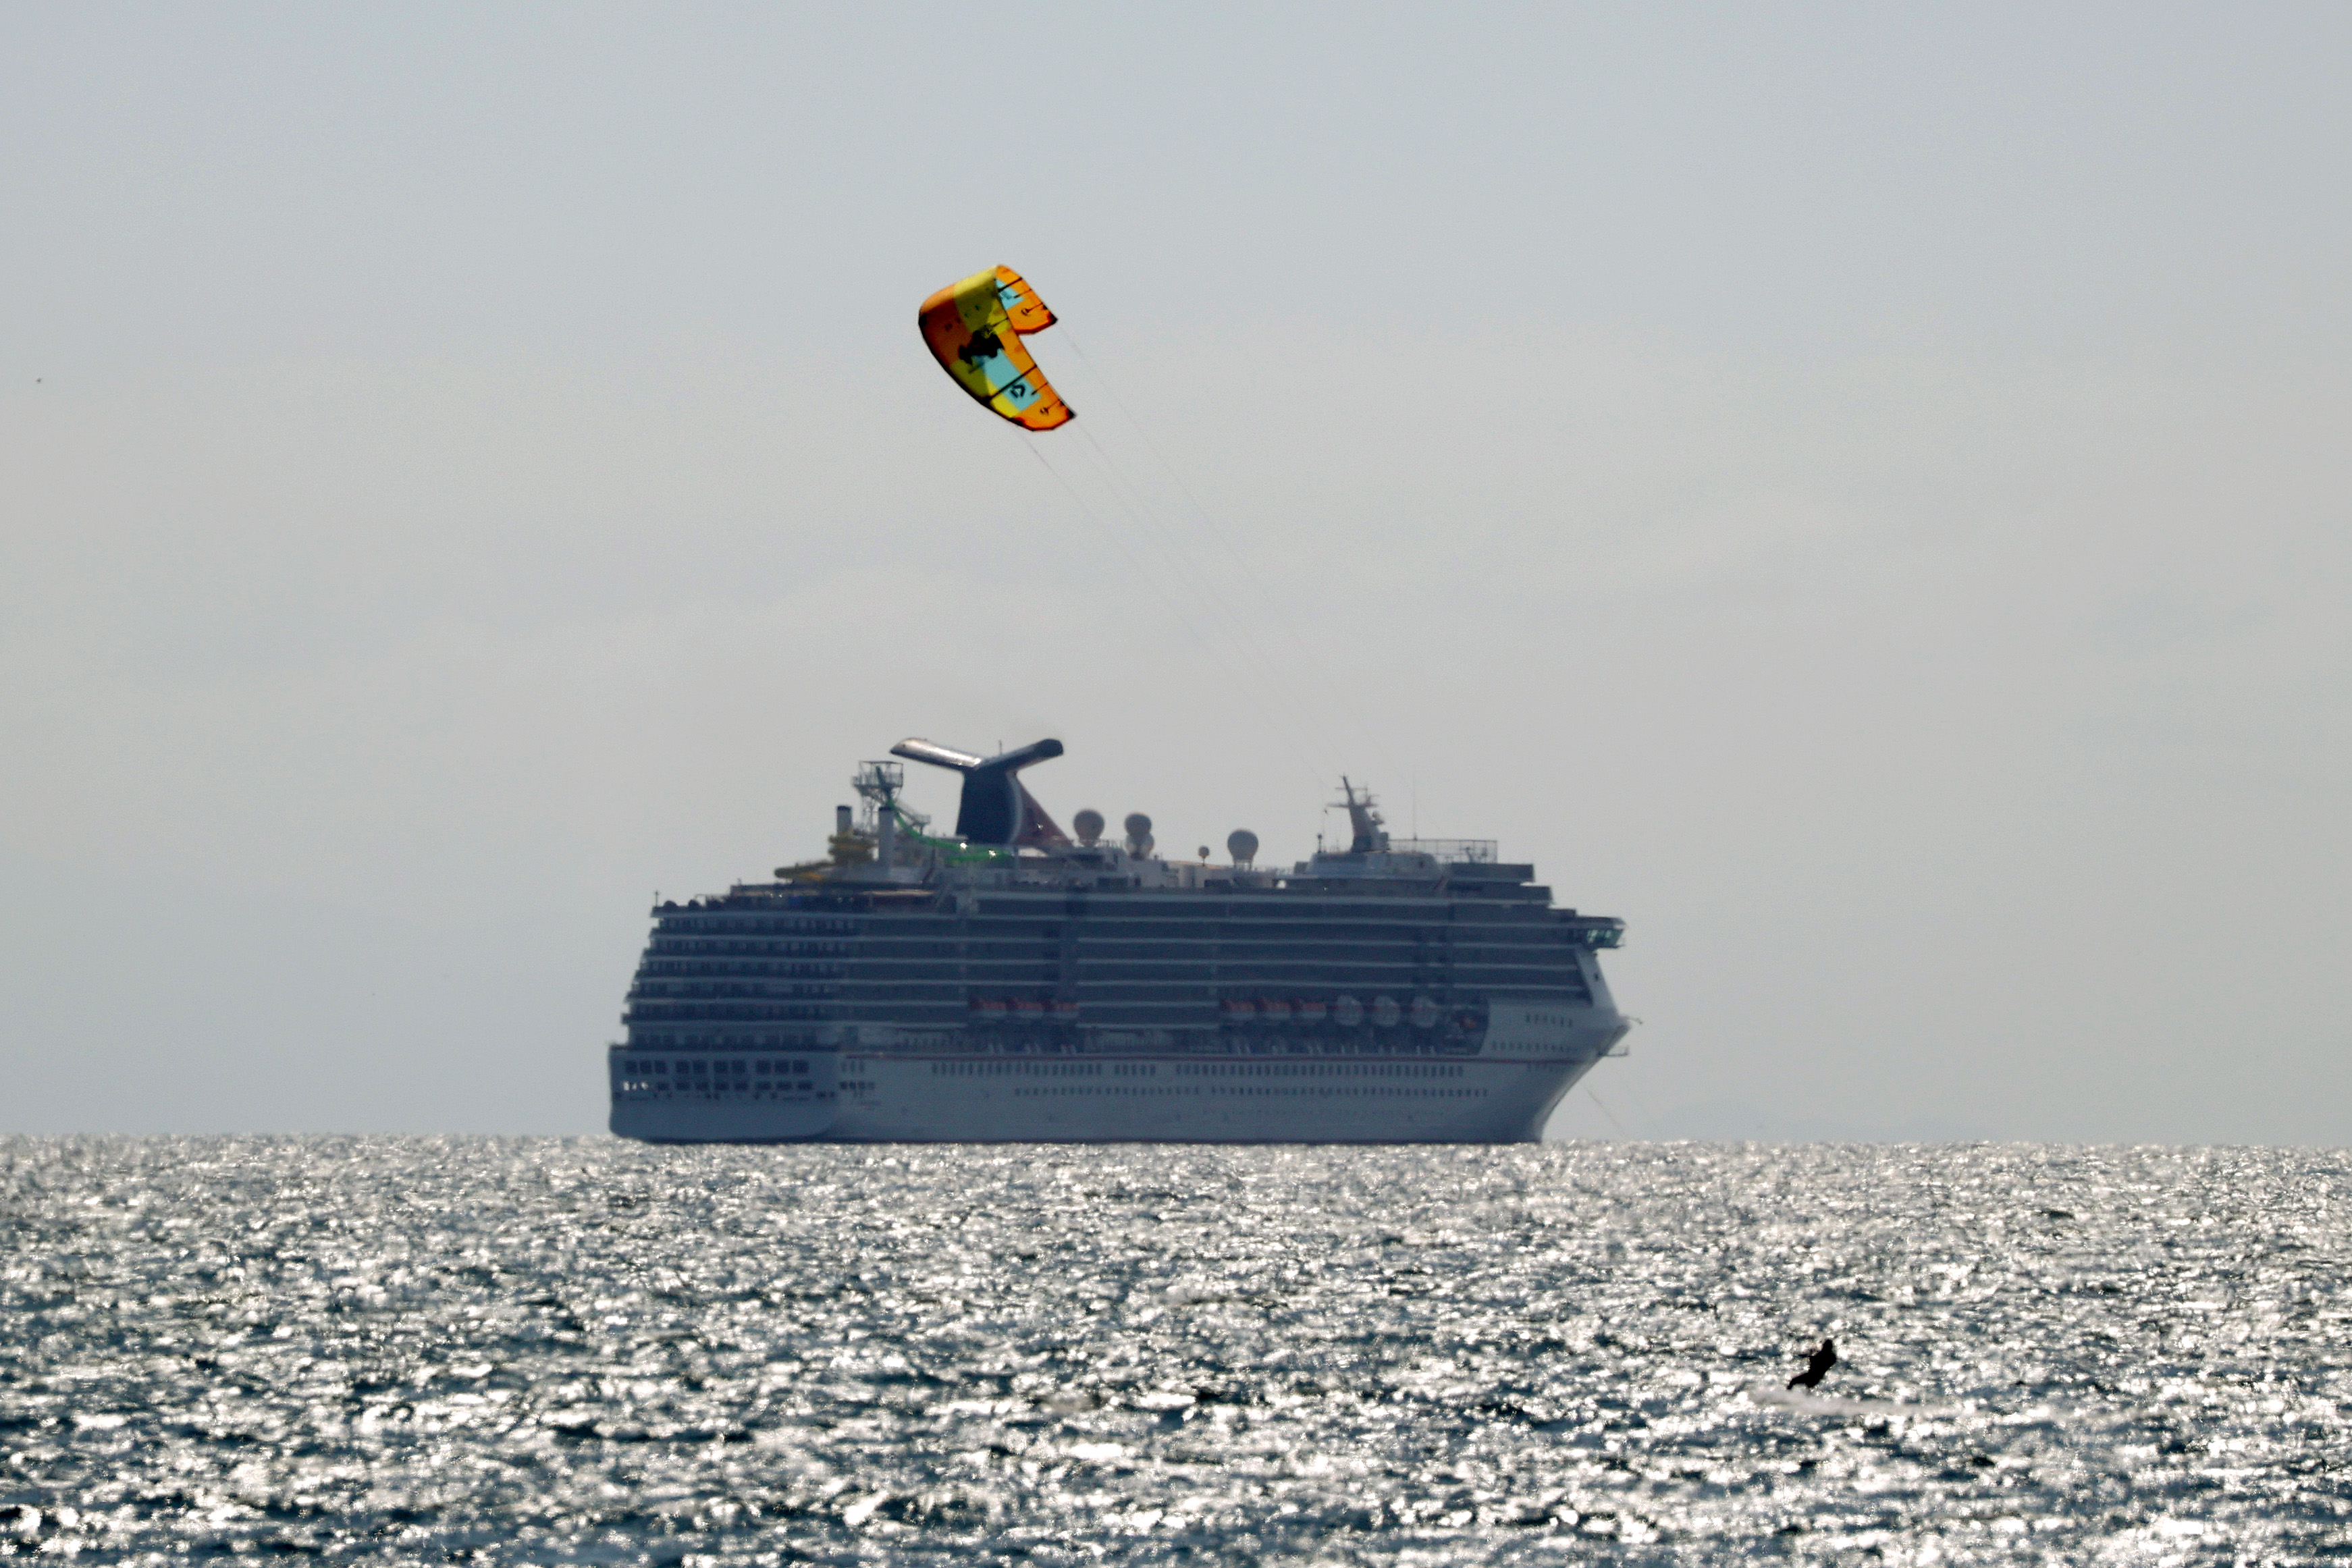 A kite surfer passes in front of an anchored Carnival cruise ship on April 20, 2020 in Huntington Beach, California. (Photo by Michael Heiman/Getty Images)